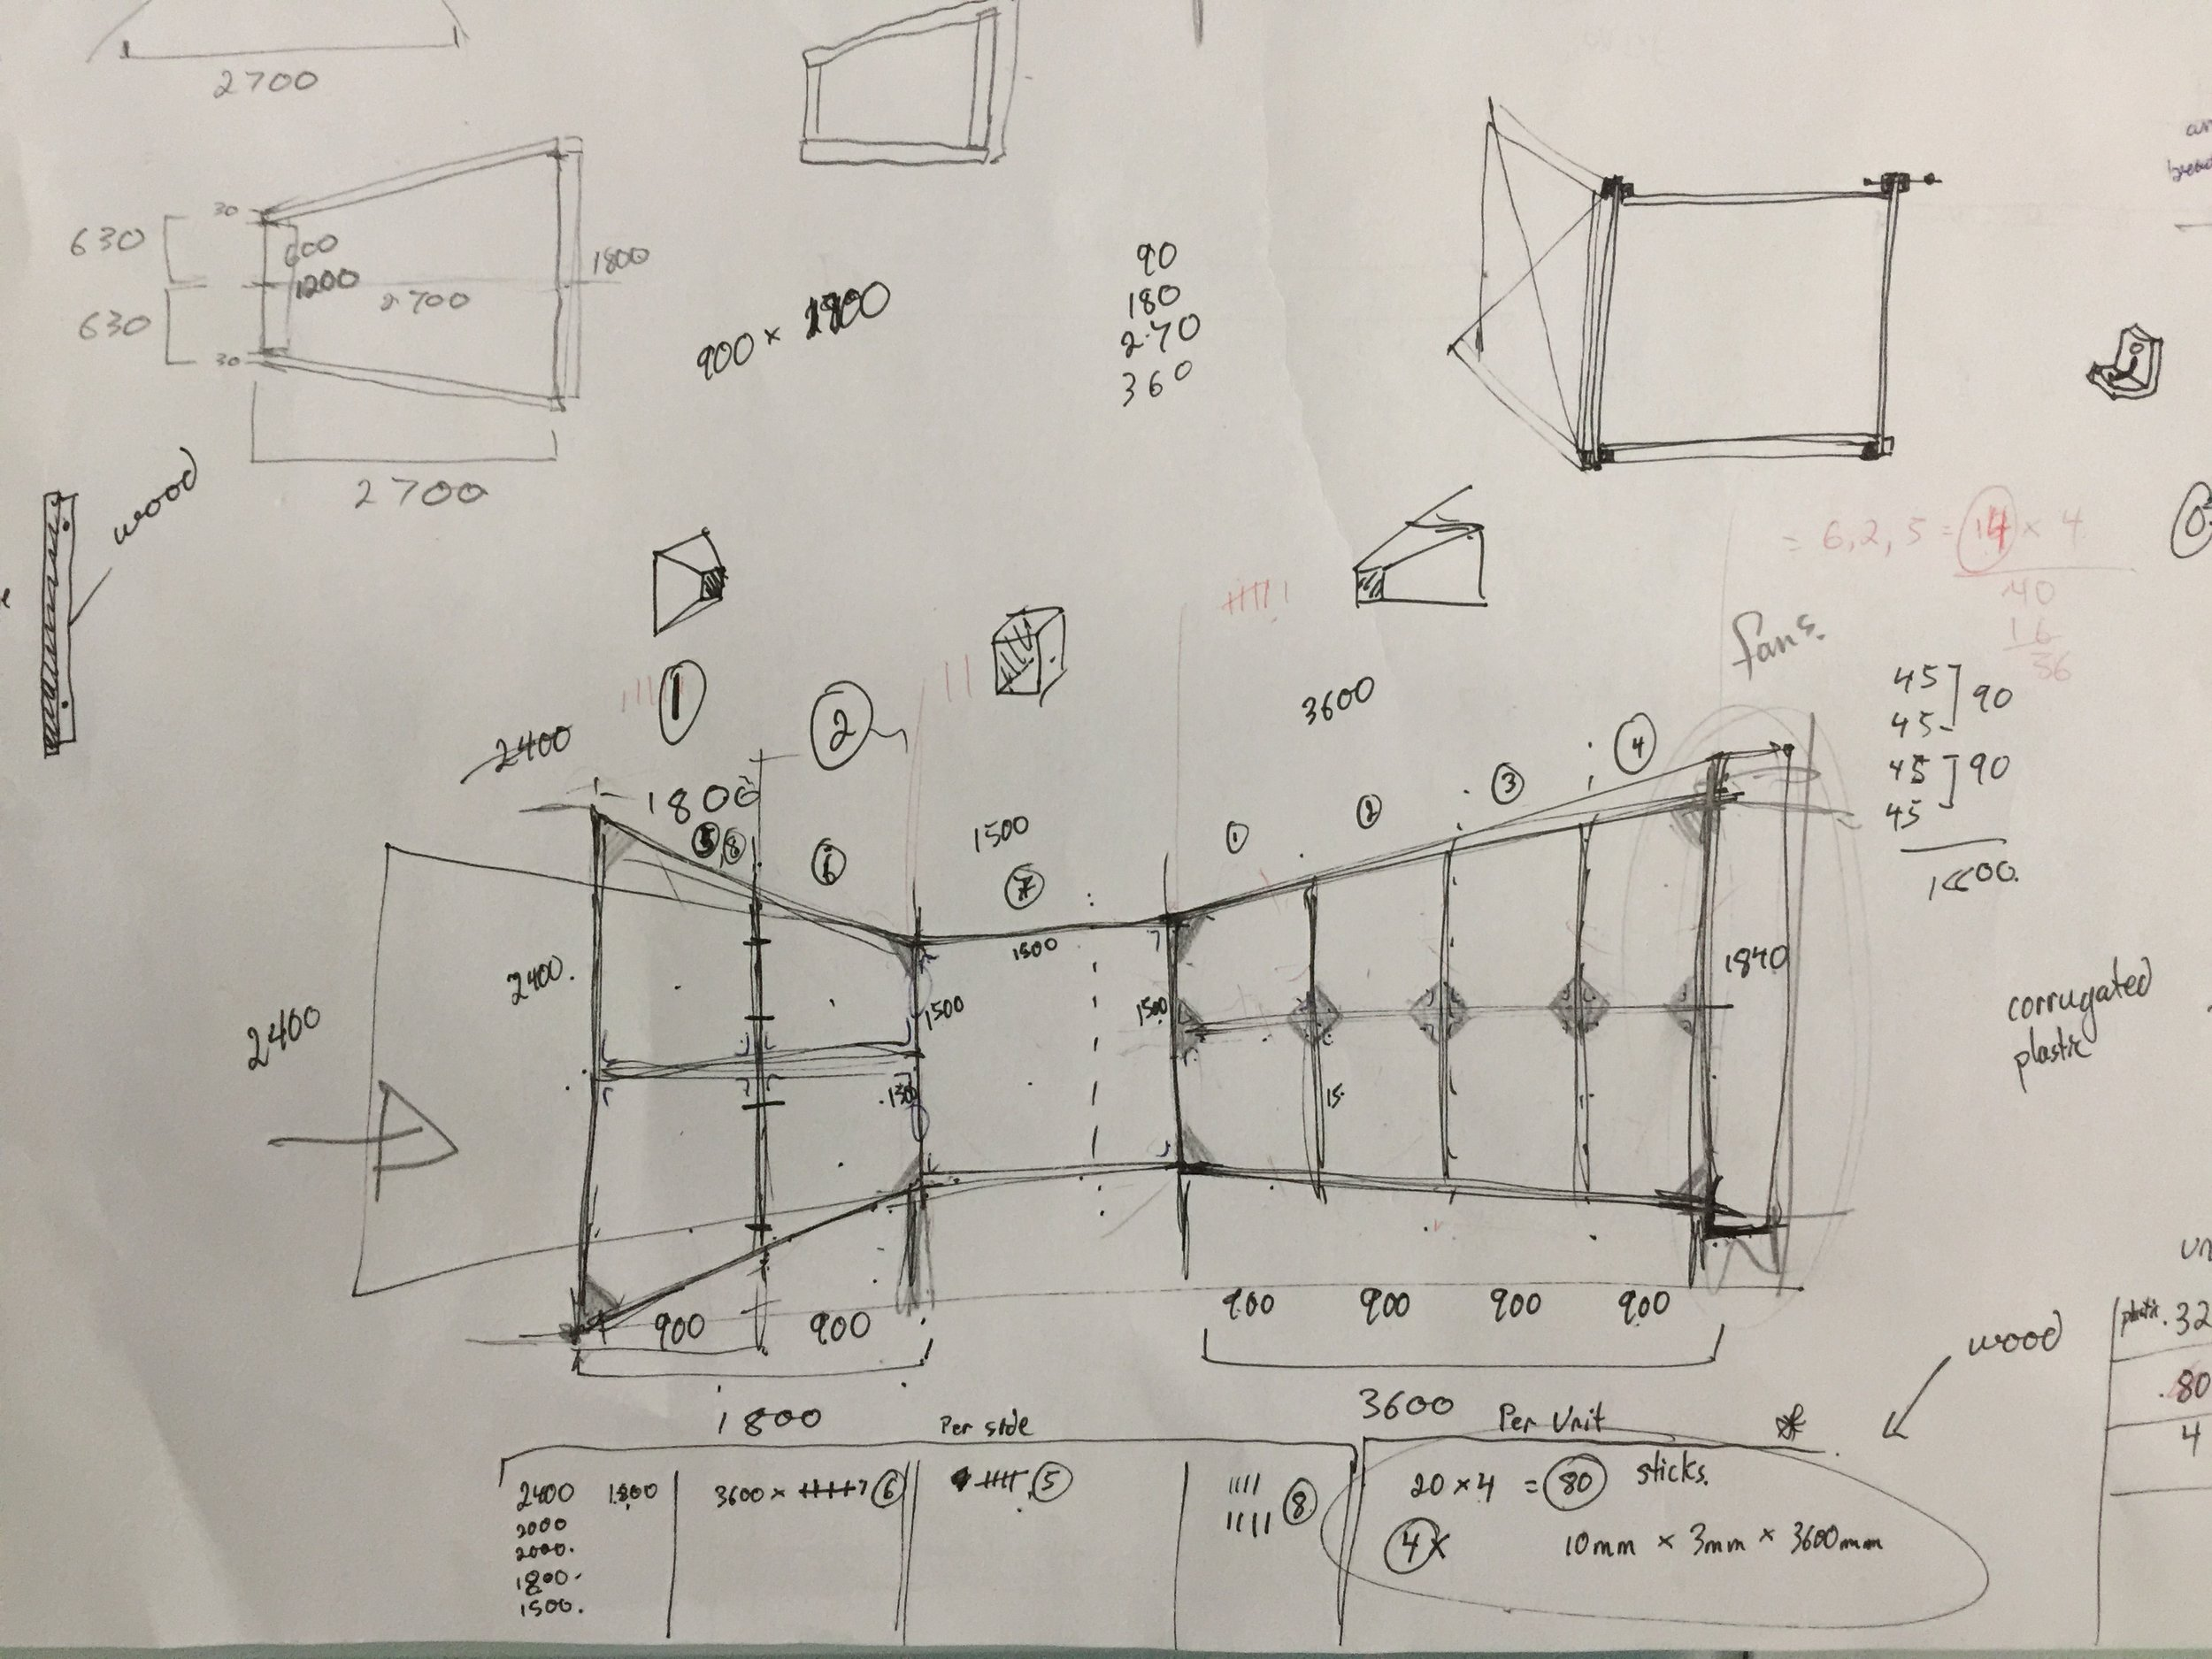 rough planning drawings